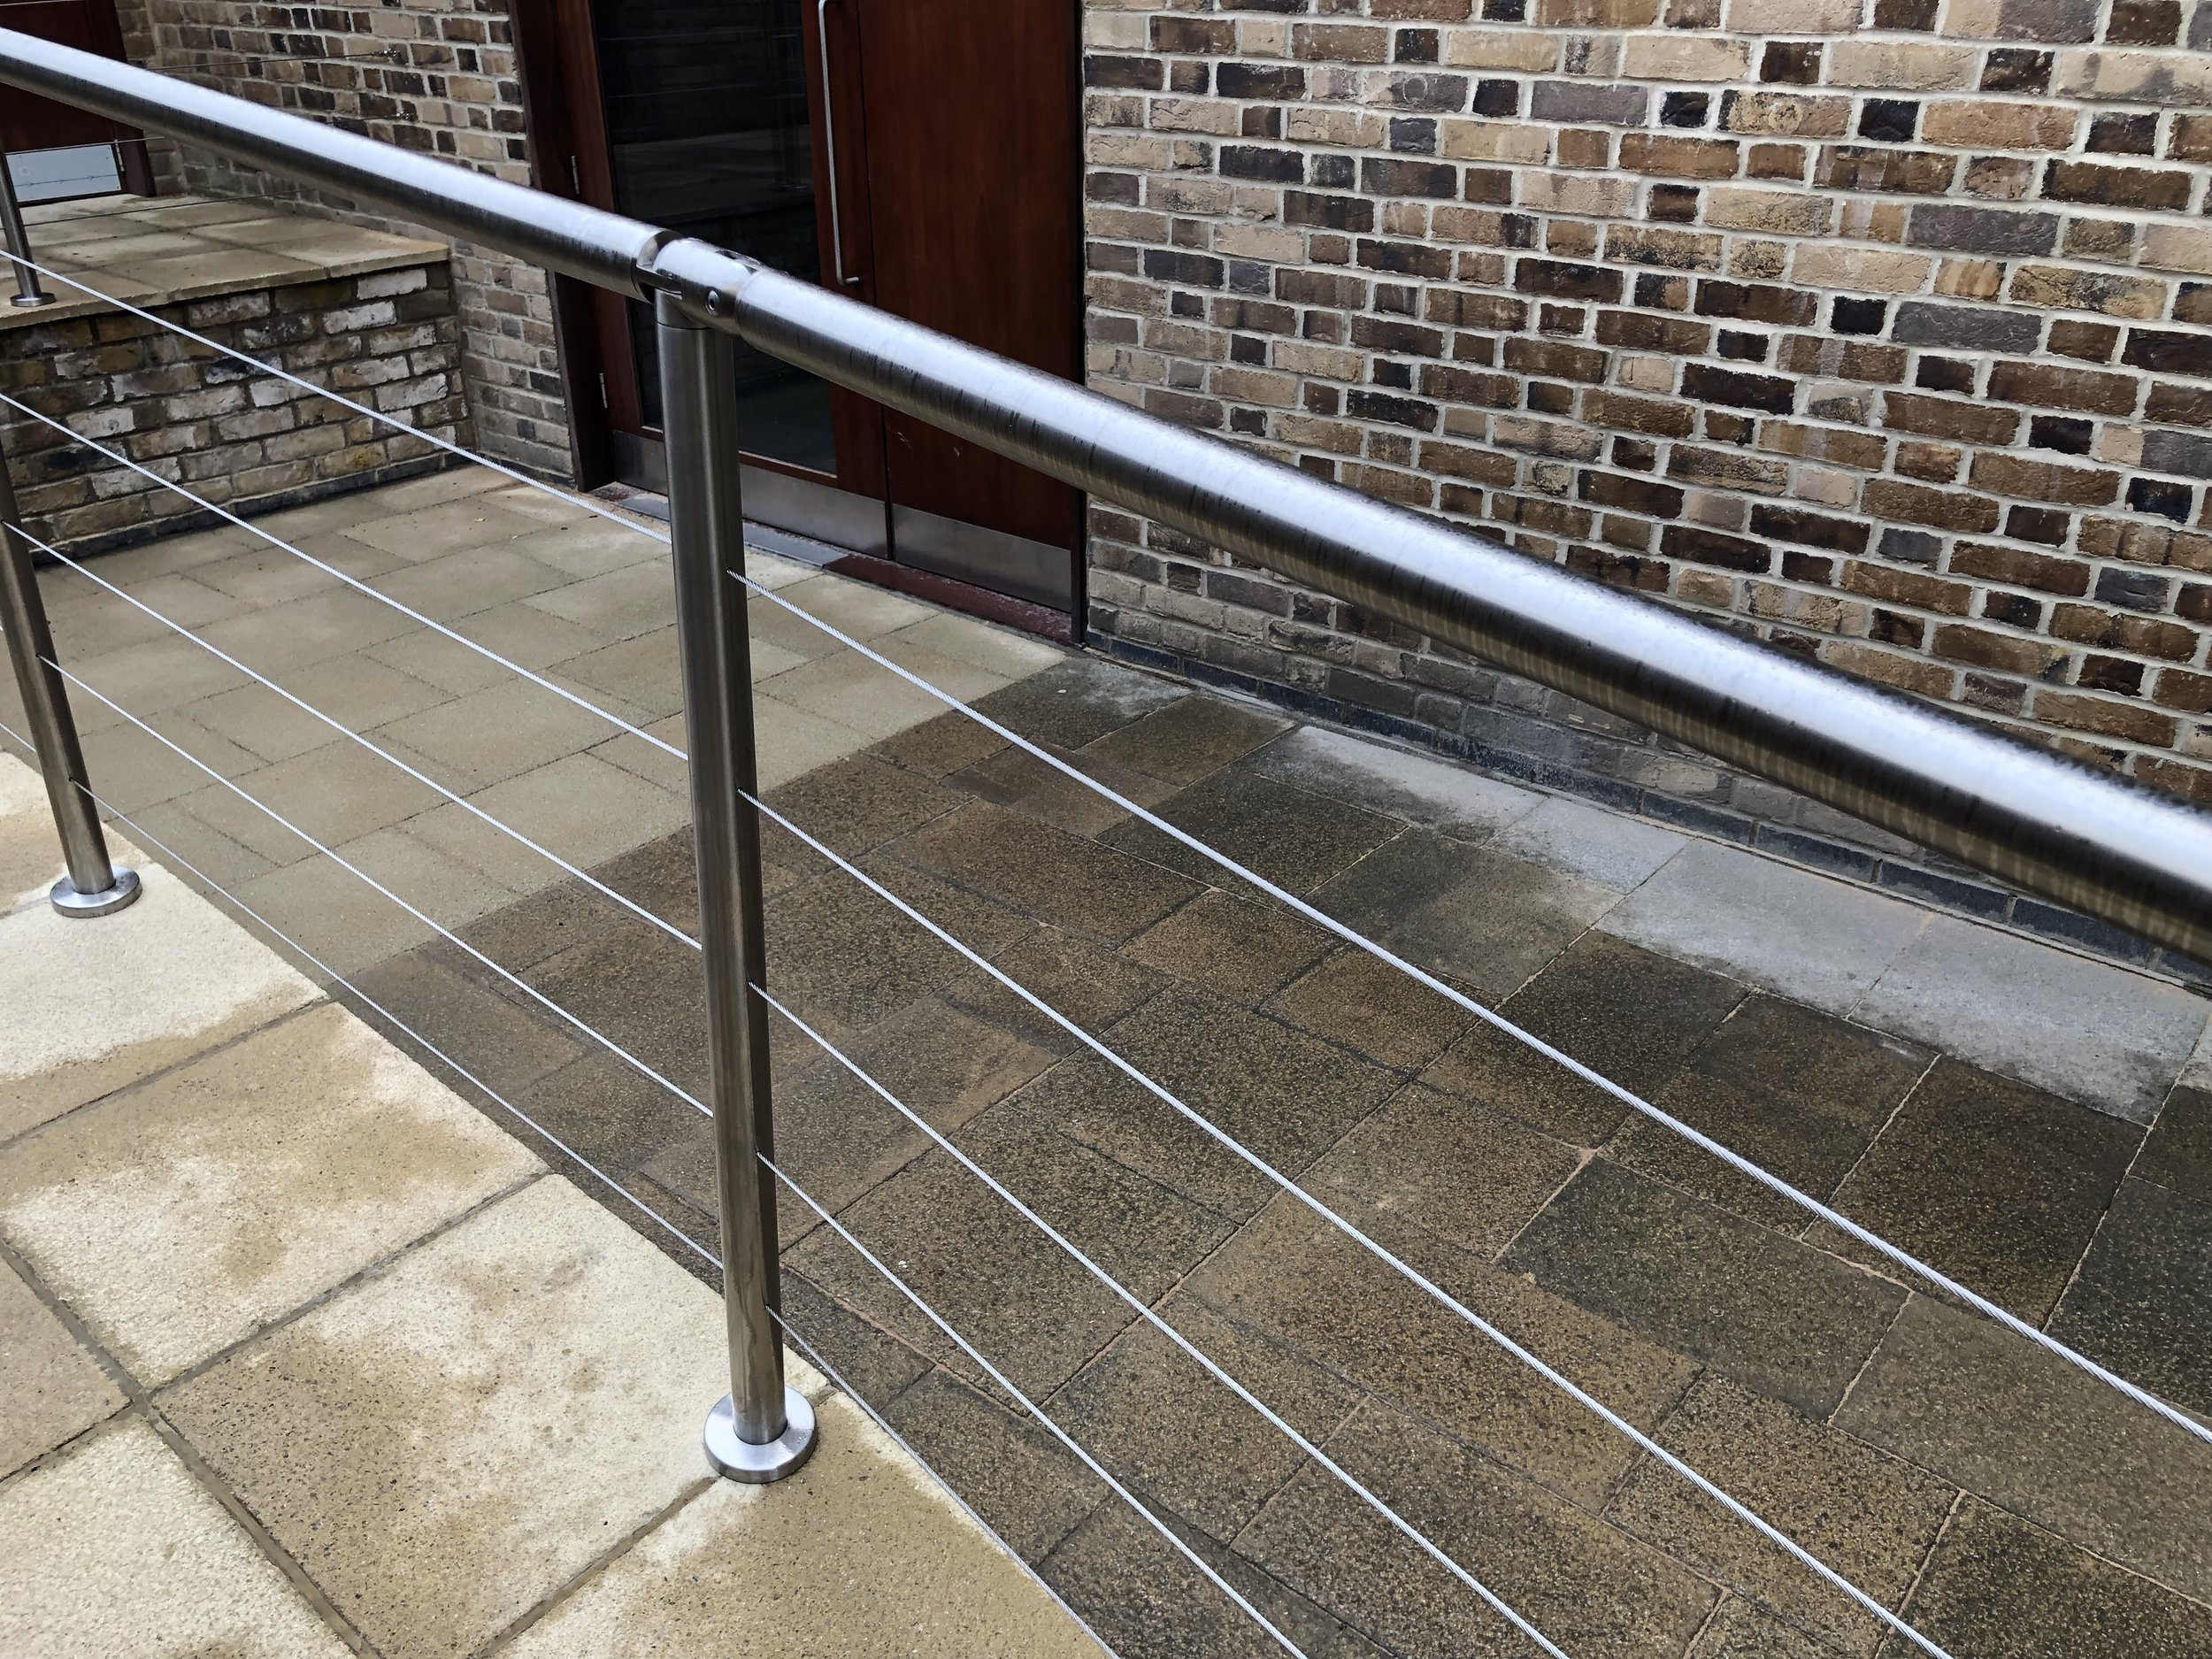 LRC_Gym_handrail_2.jpeg